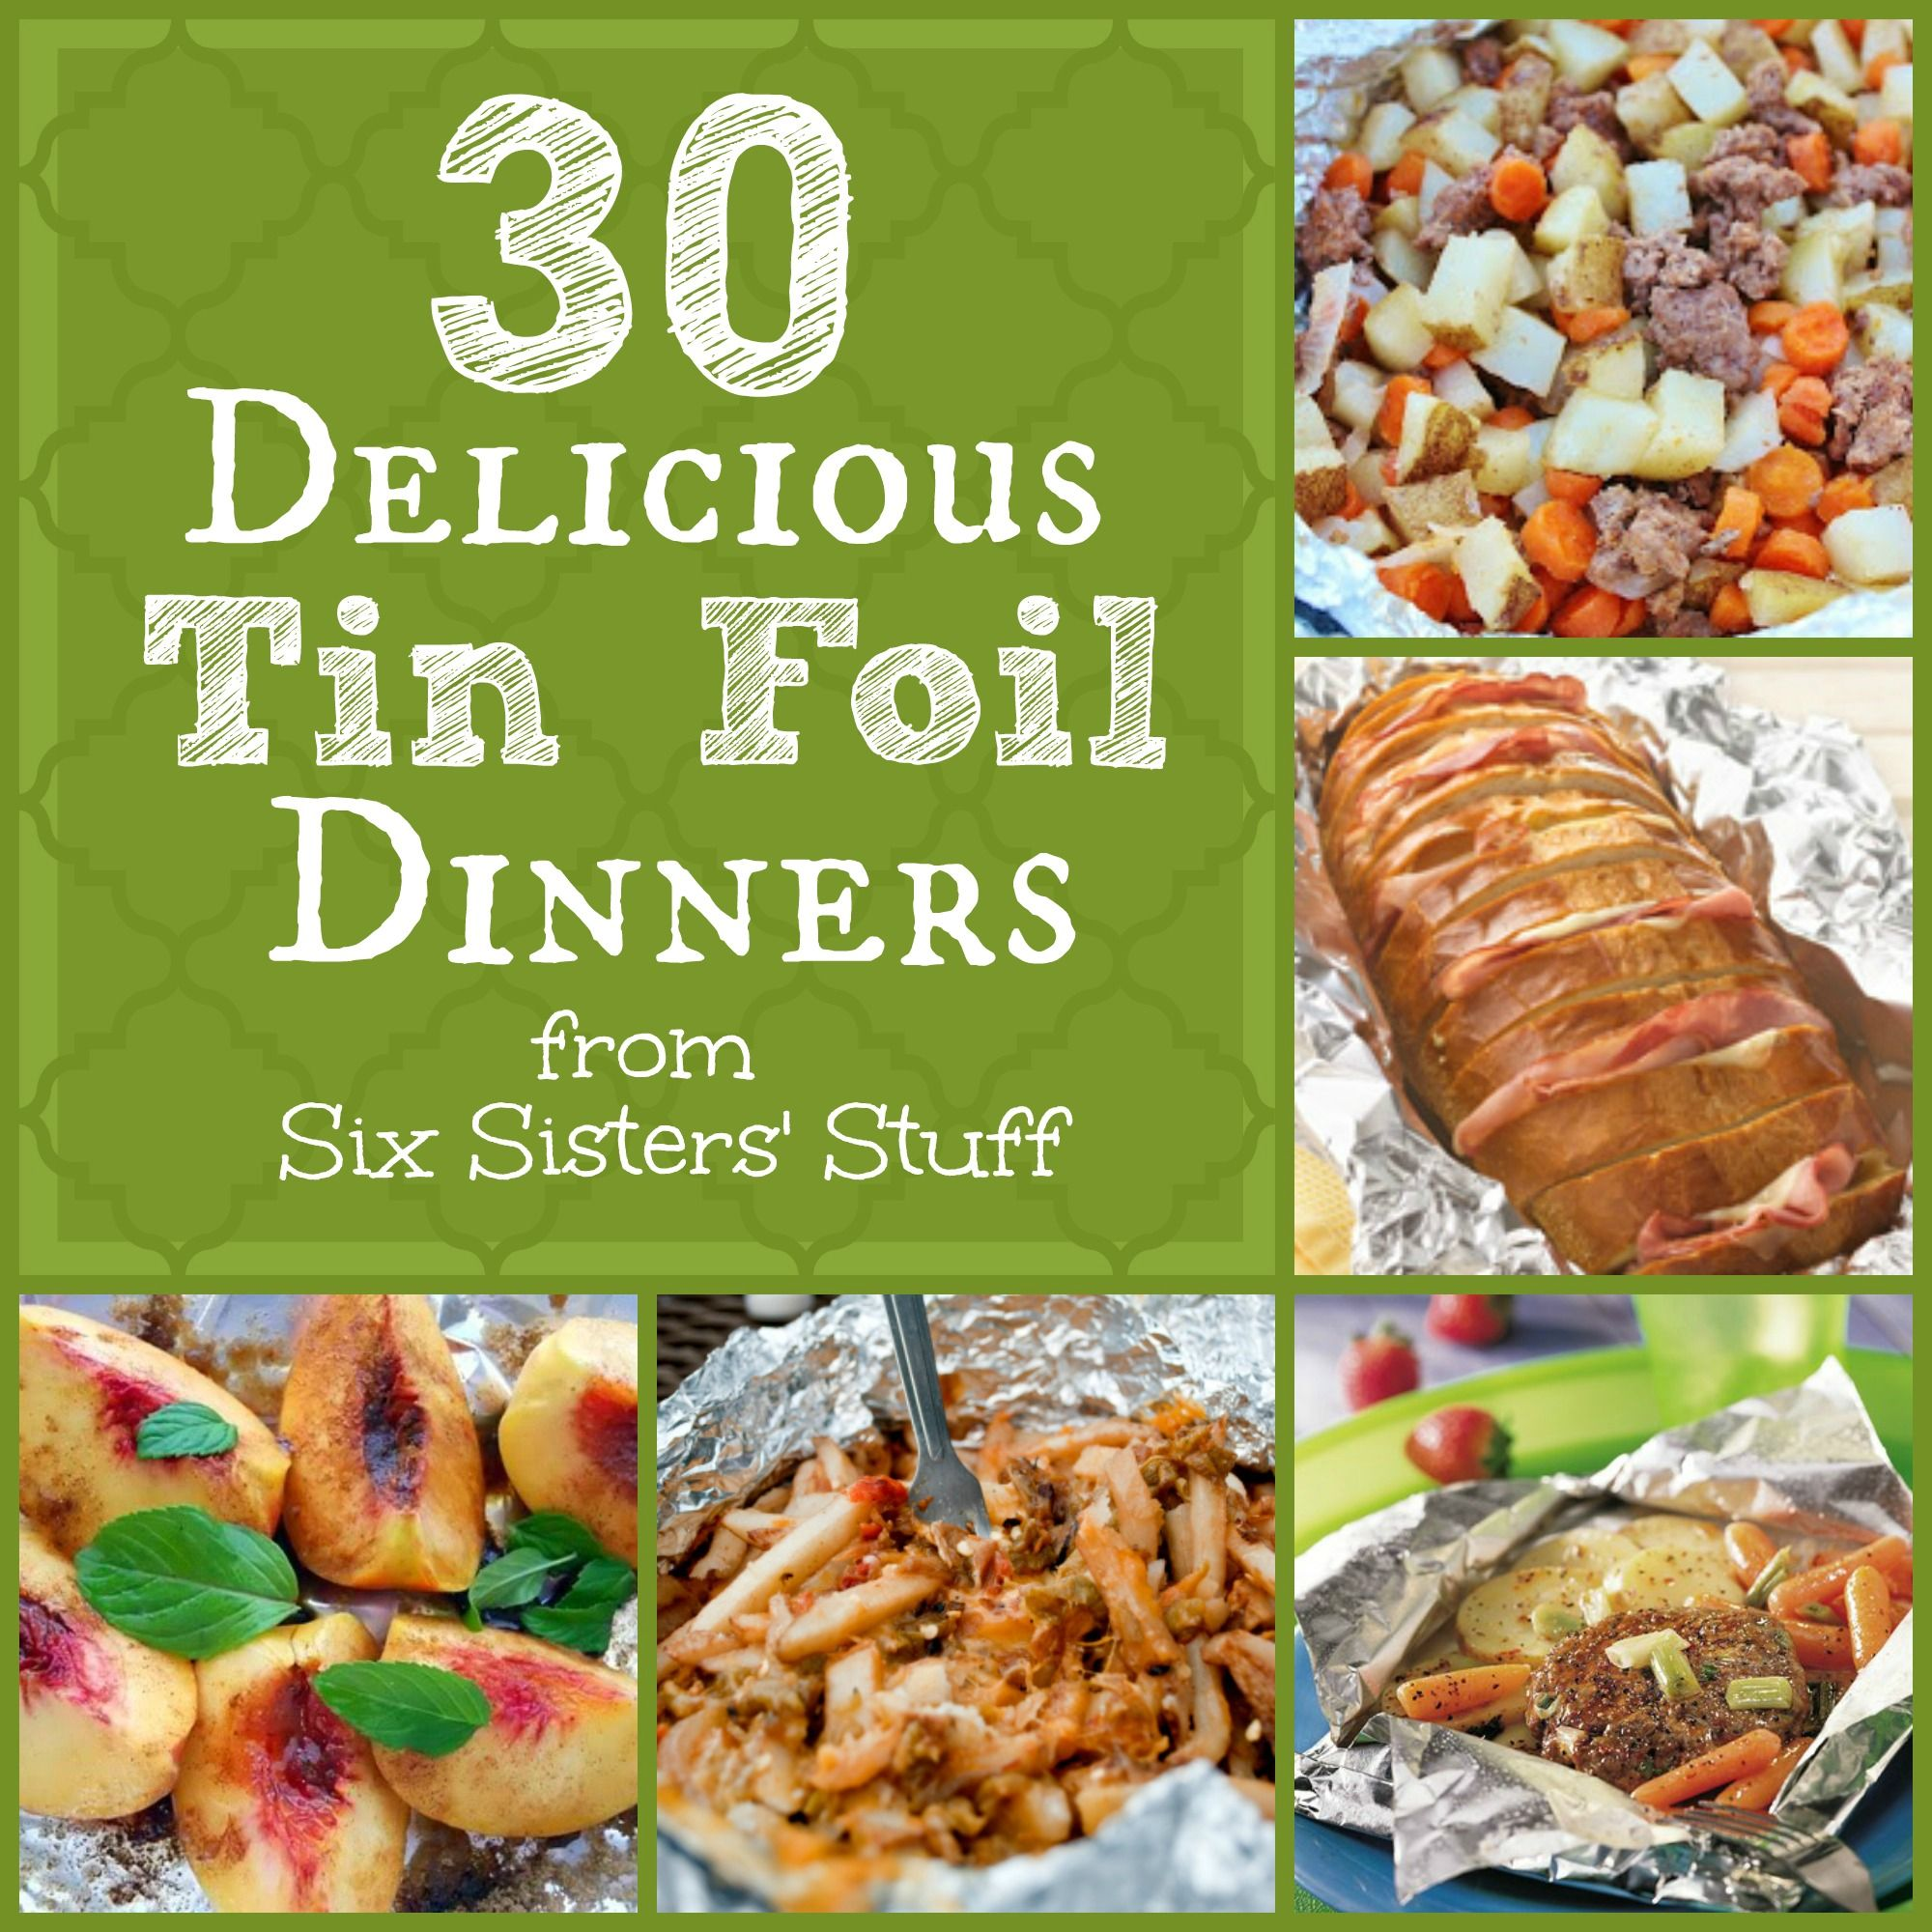 Camping Food Ideas In Foil: 30 Delicious Tin Foil Dinners From SixSistersStuff.com